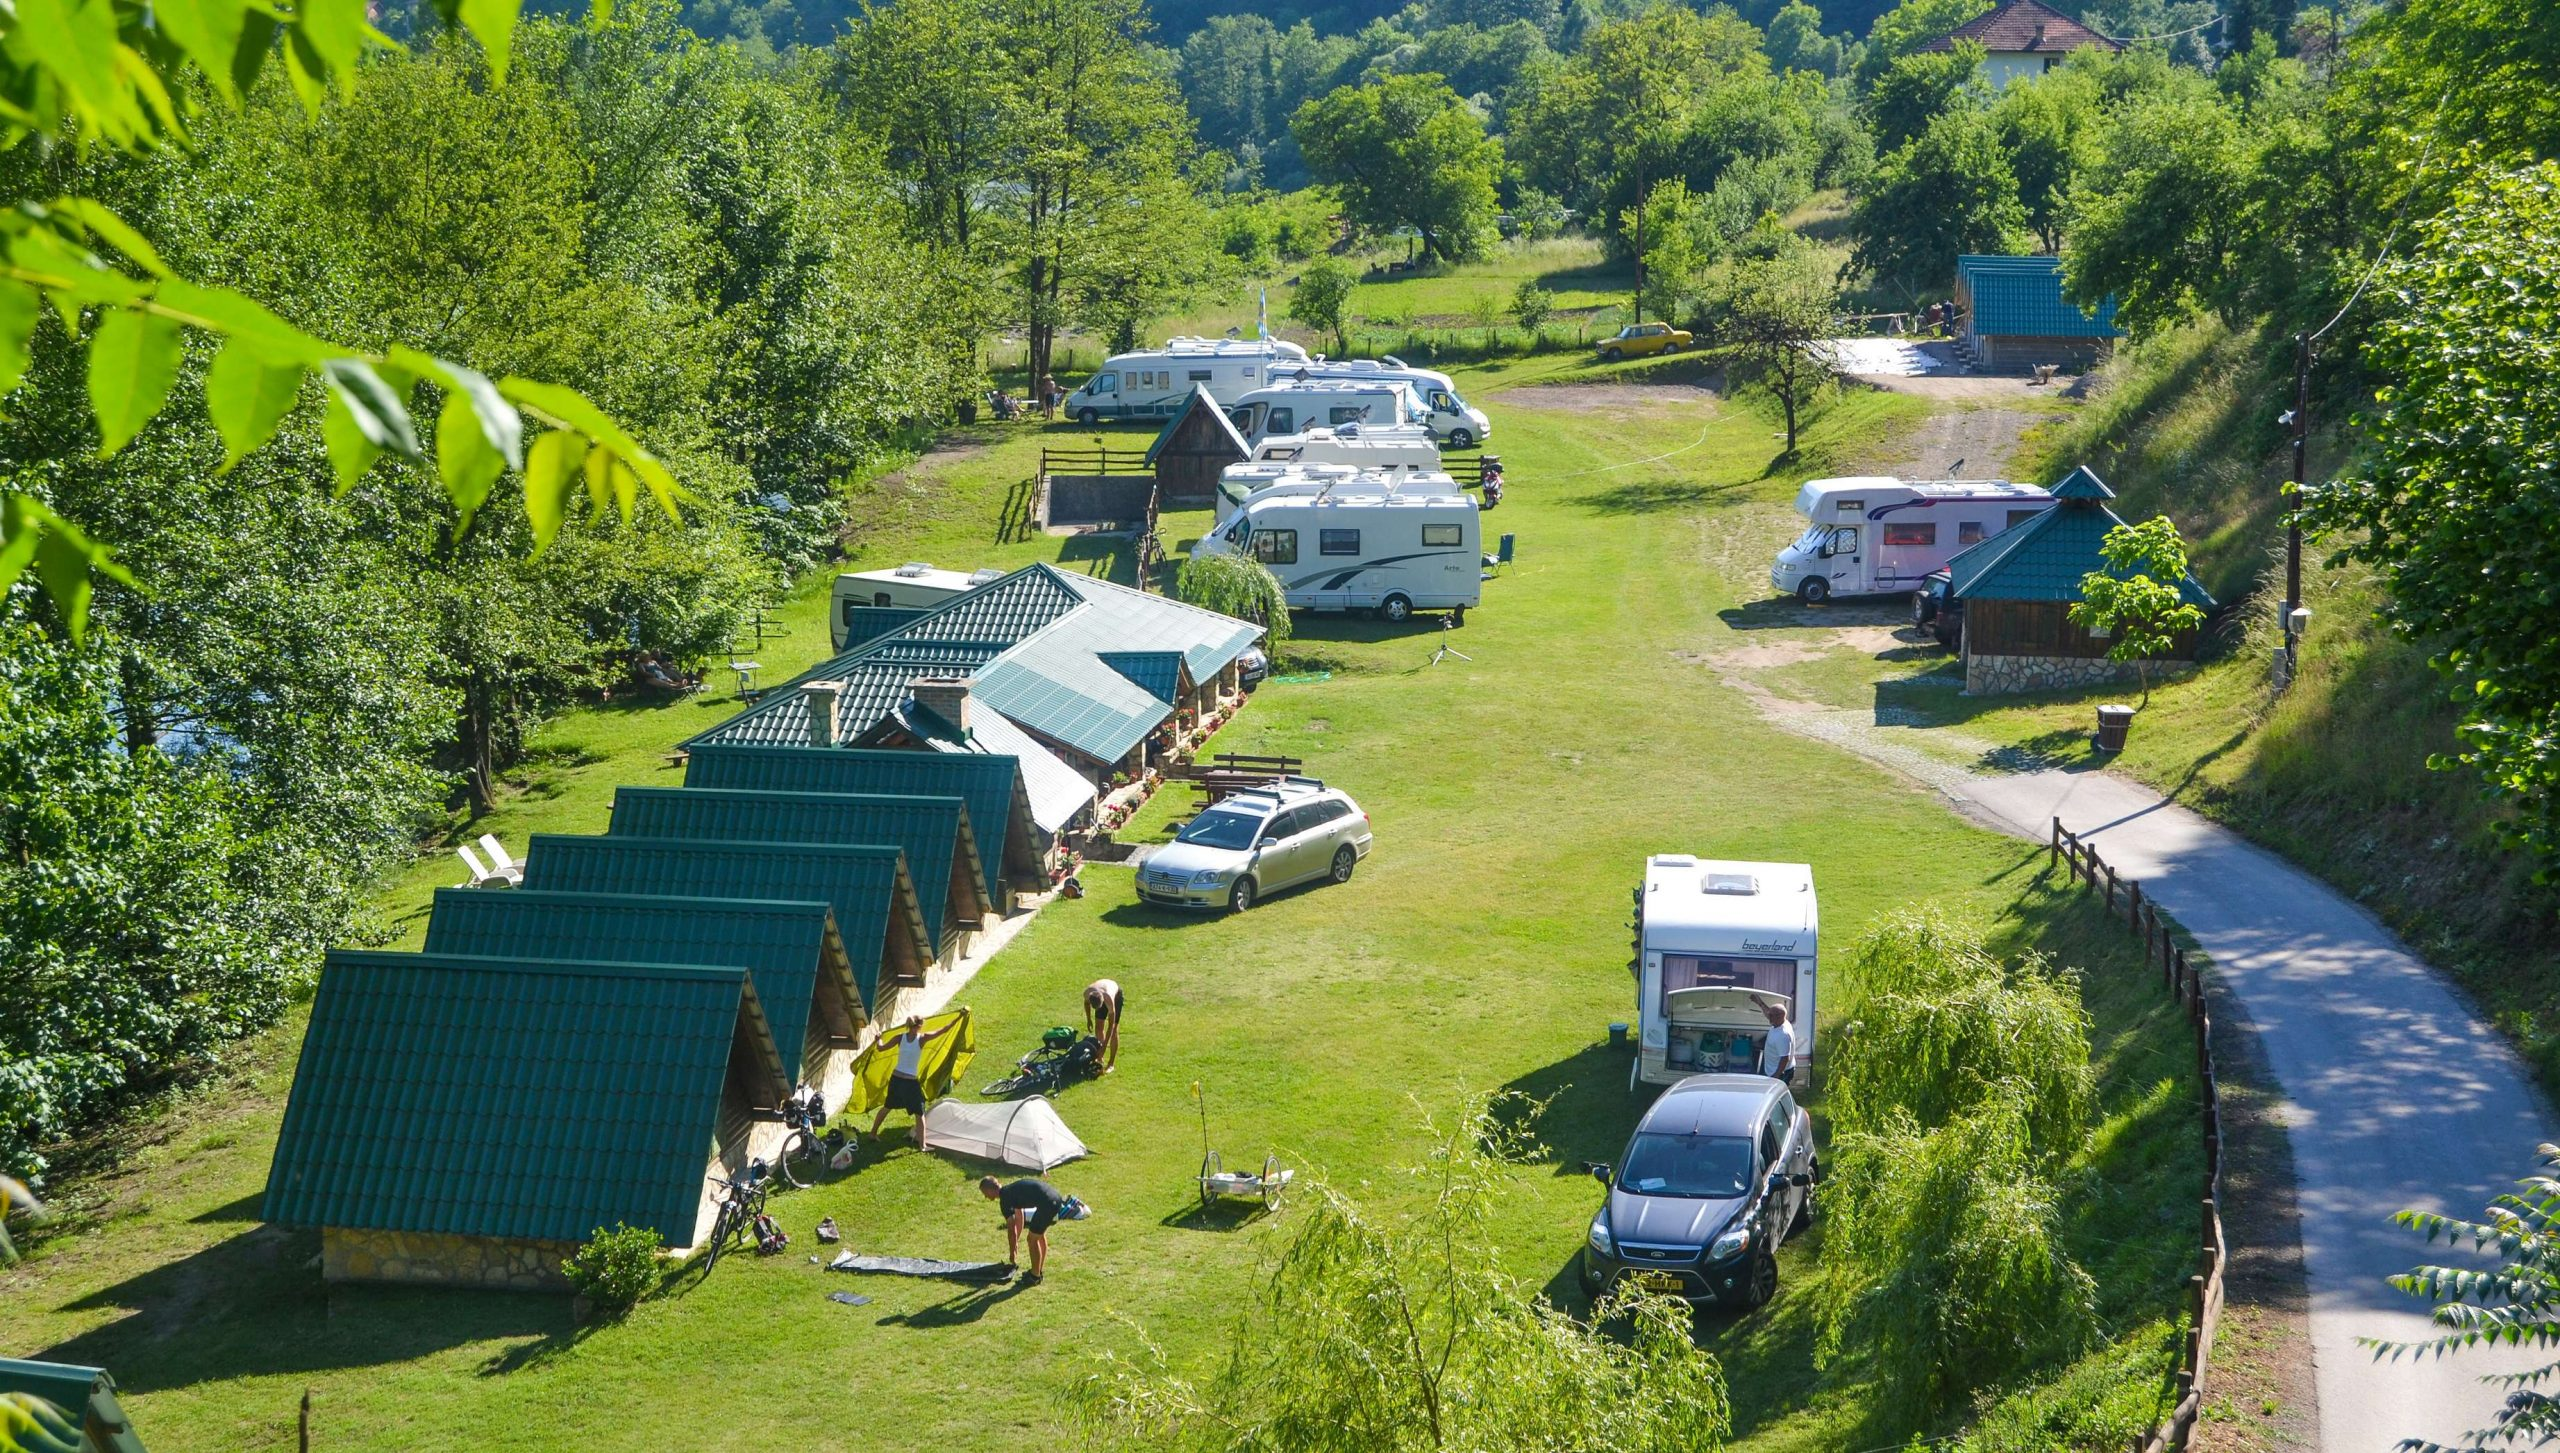 Auto-camp-drina-website2